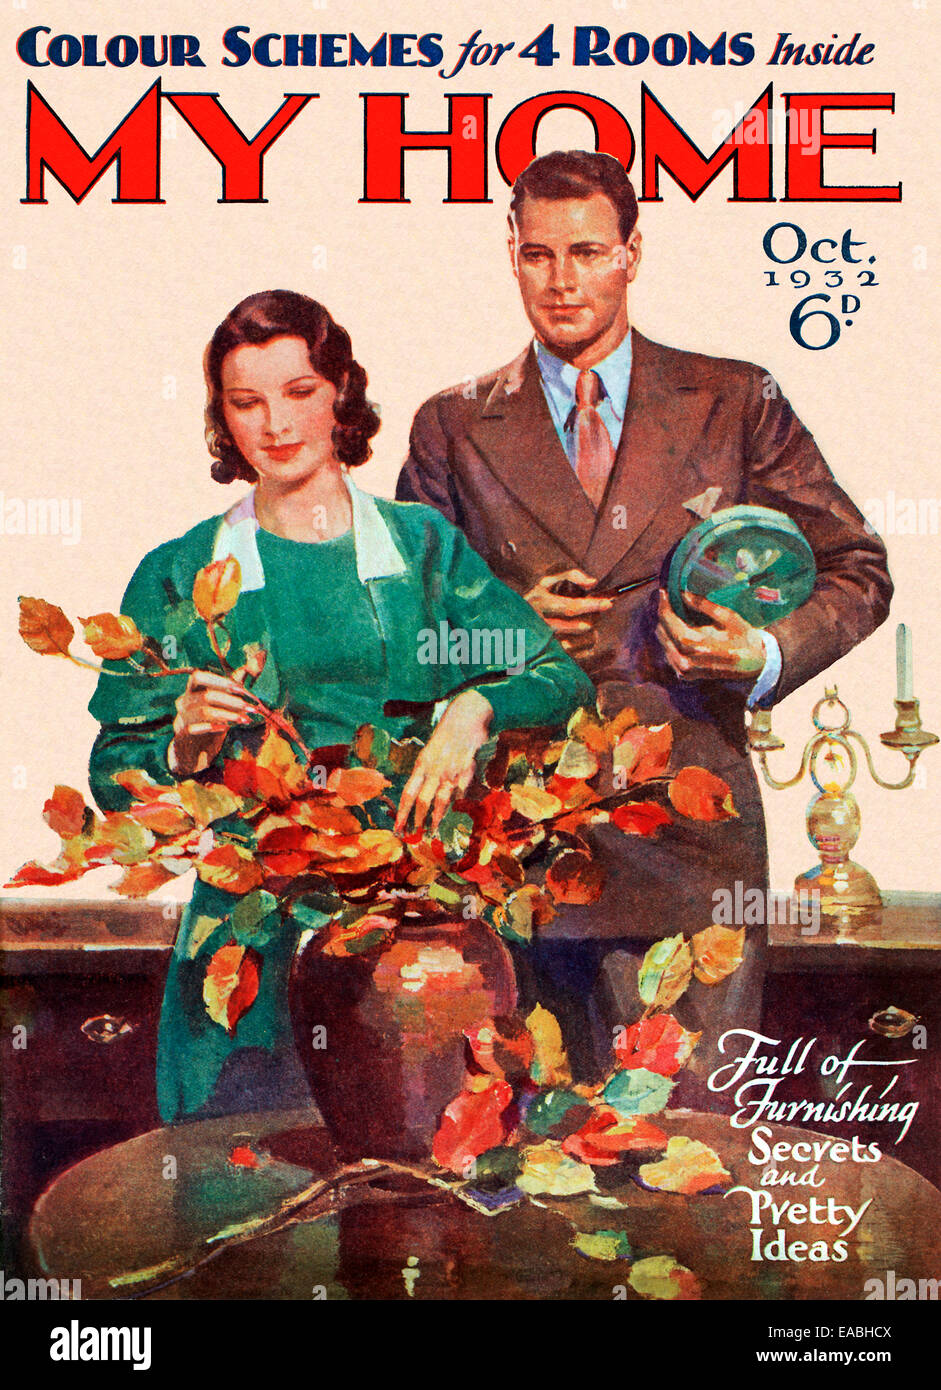 My Home, Leaves, 1932 Cover Of The English Home And Lifestyle Magazine For  The New Suburban Middle Class, Arranging Autumn Colours To Brighten Up The  House